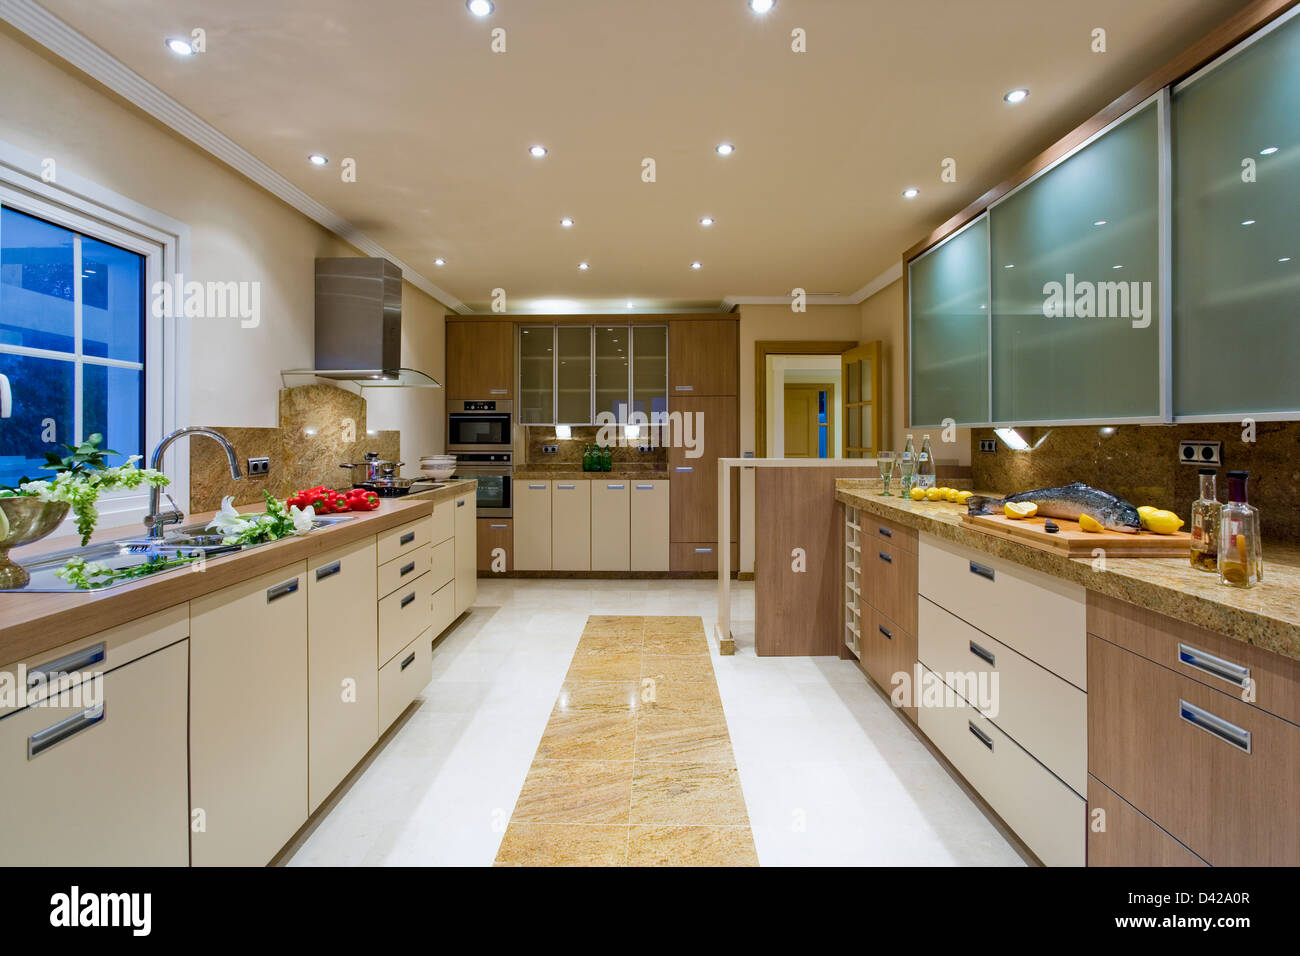 Modern Kitchen Lights Ceiling Large Modern Kitchen In Spanish Villa With Recessed Ceiling Lights